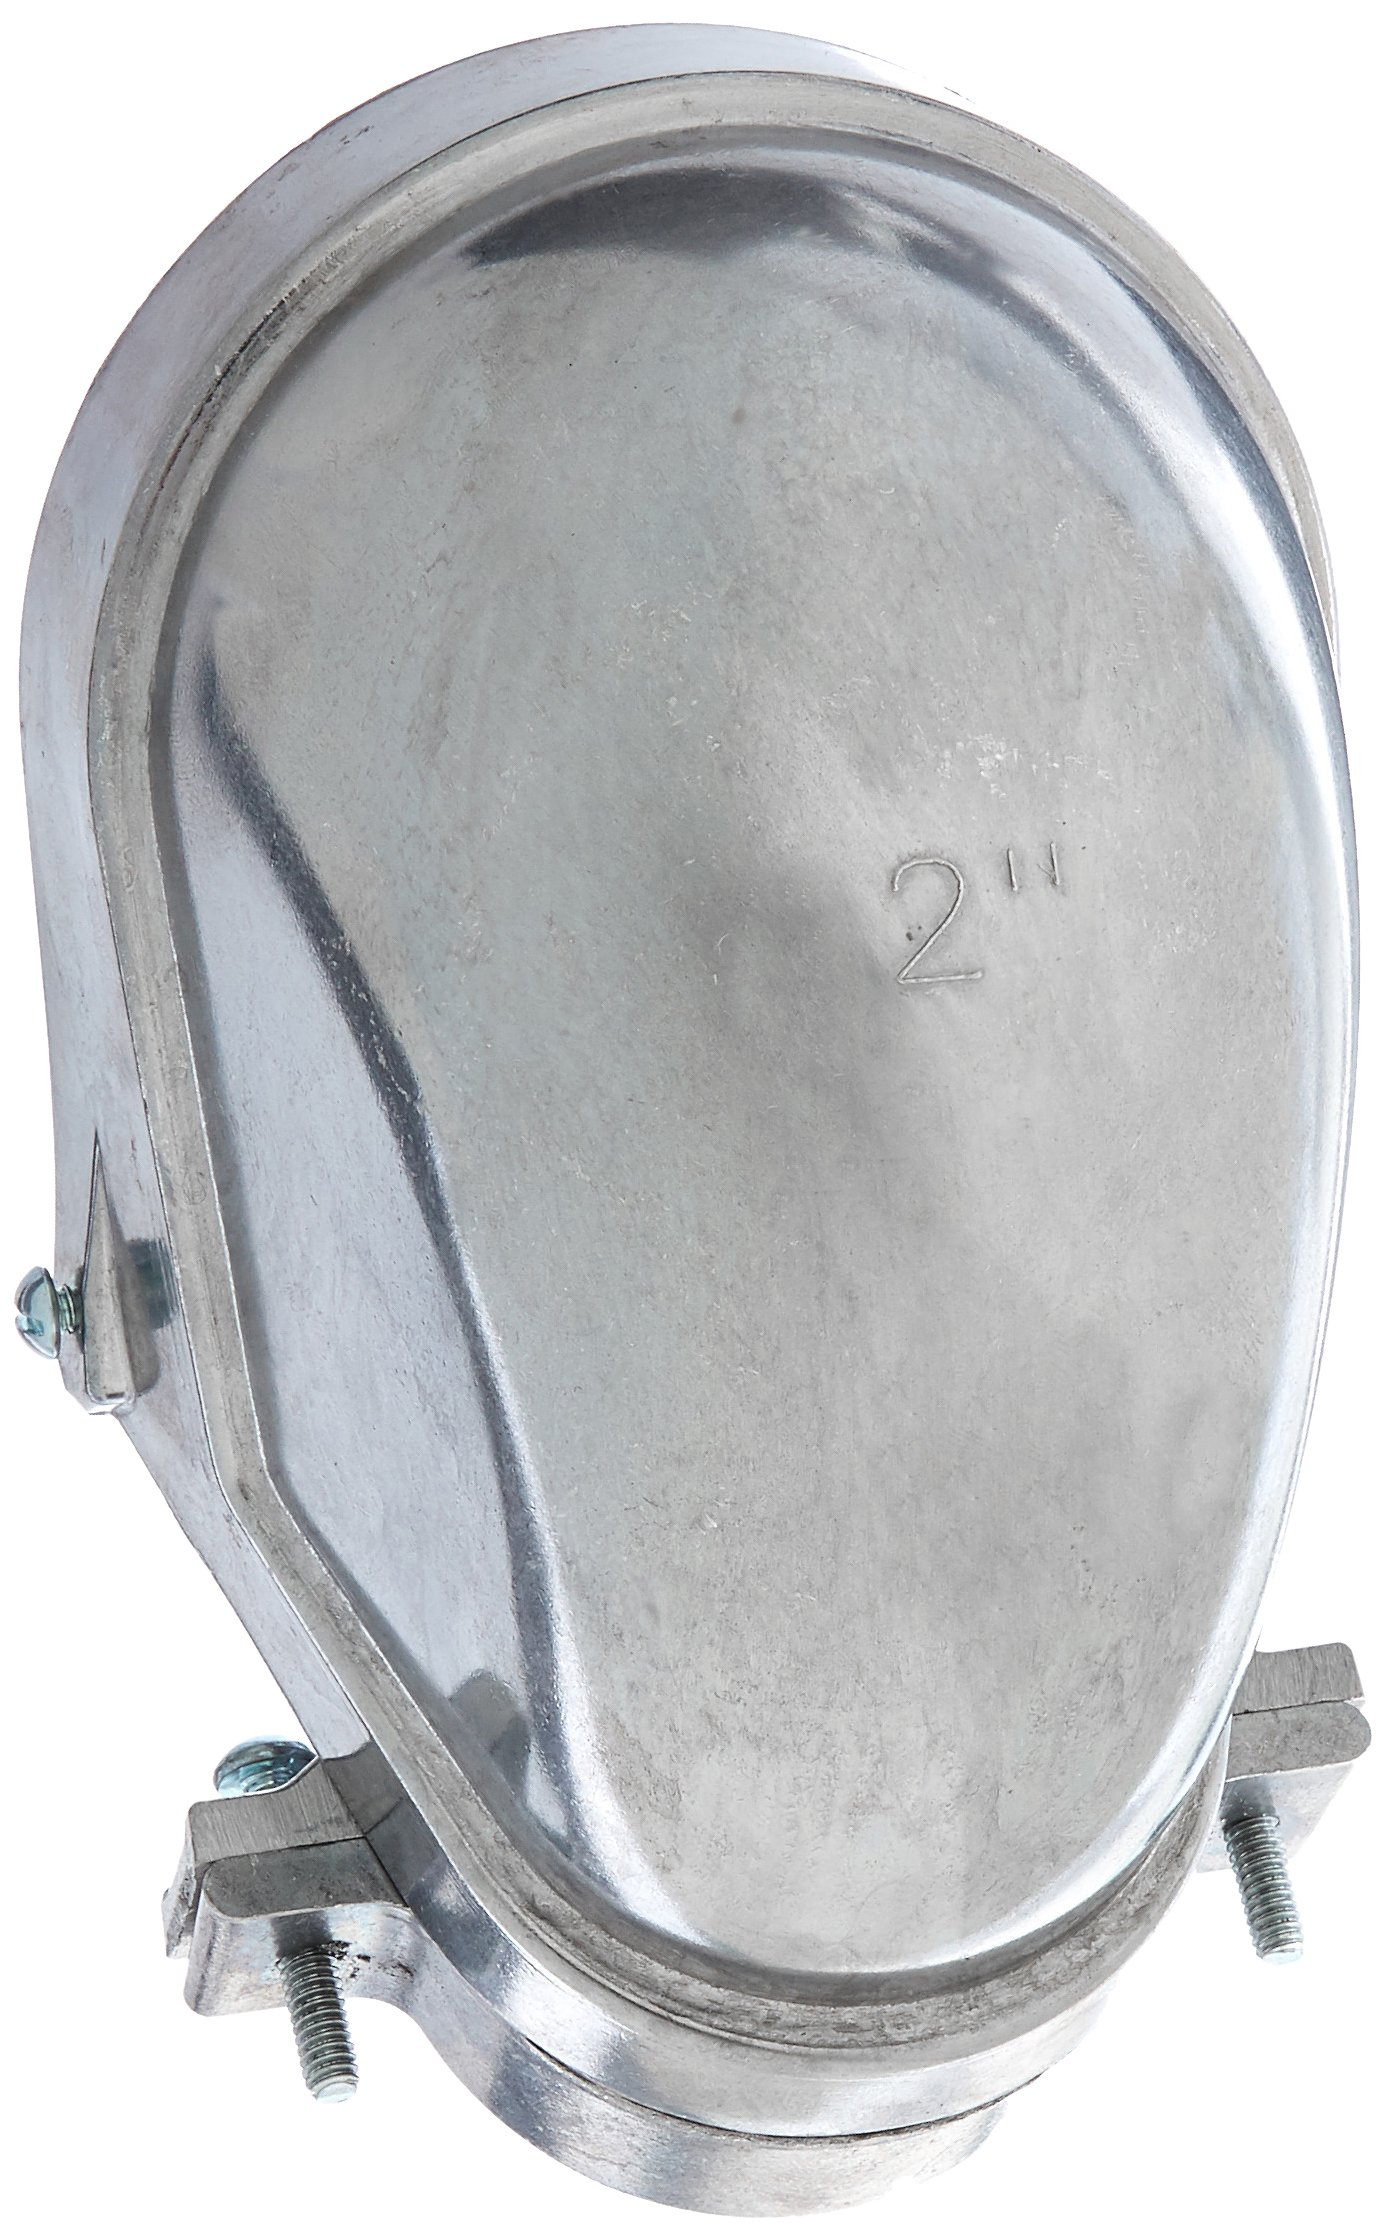 Hubbell-Raco 2408-5 Entrance Head, Clamp-Type, 2-Inch Trade Size, EMT or Rigid/IMC, Aluminum